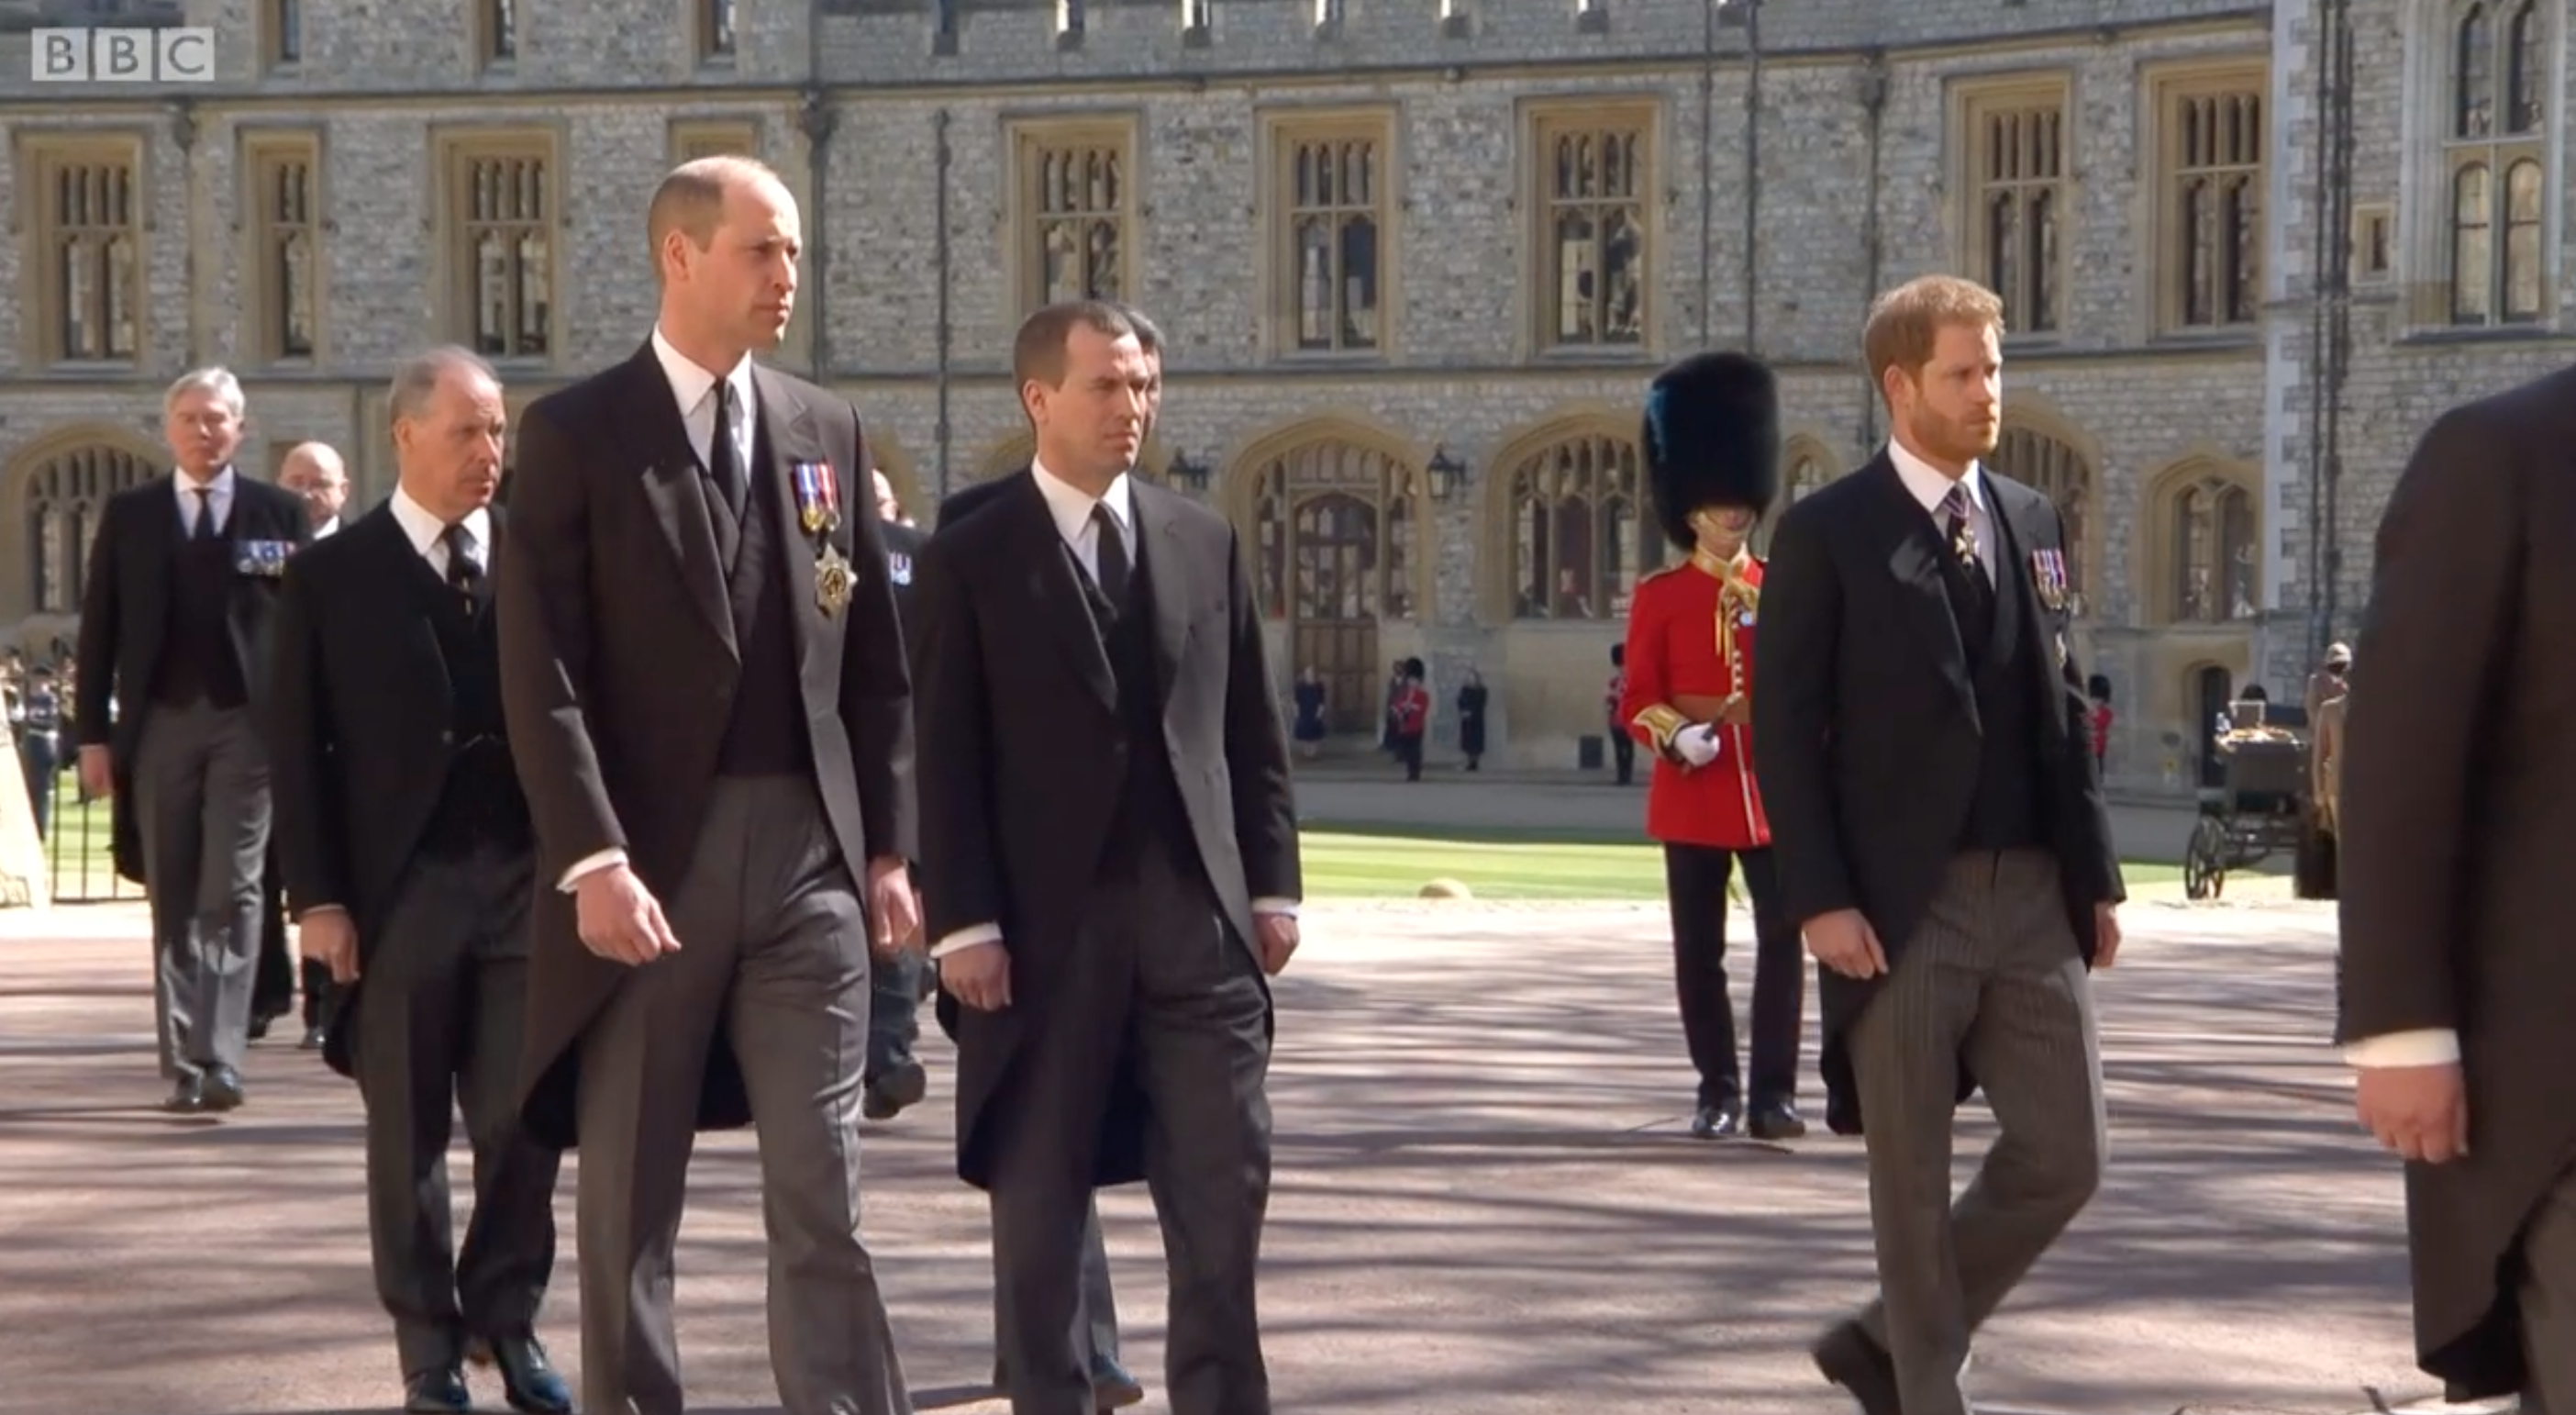 Prince Harry & Prince William Walk Behind Prince Philip's Coffin Ahead Of Their Grandfather's Funeral